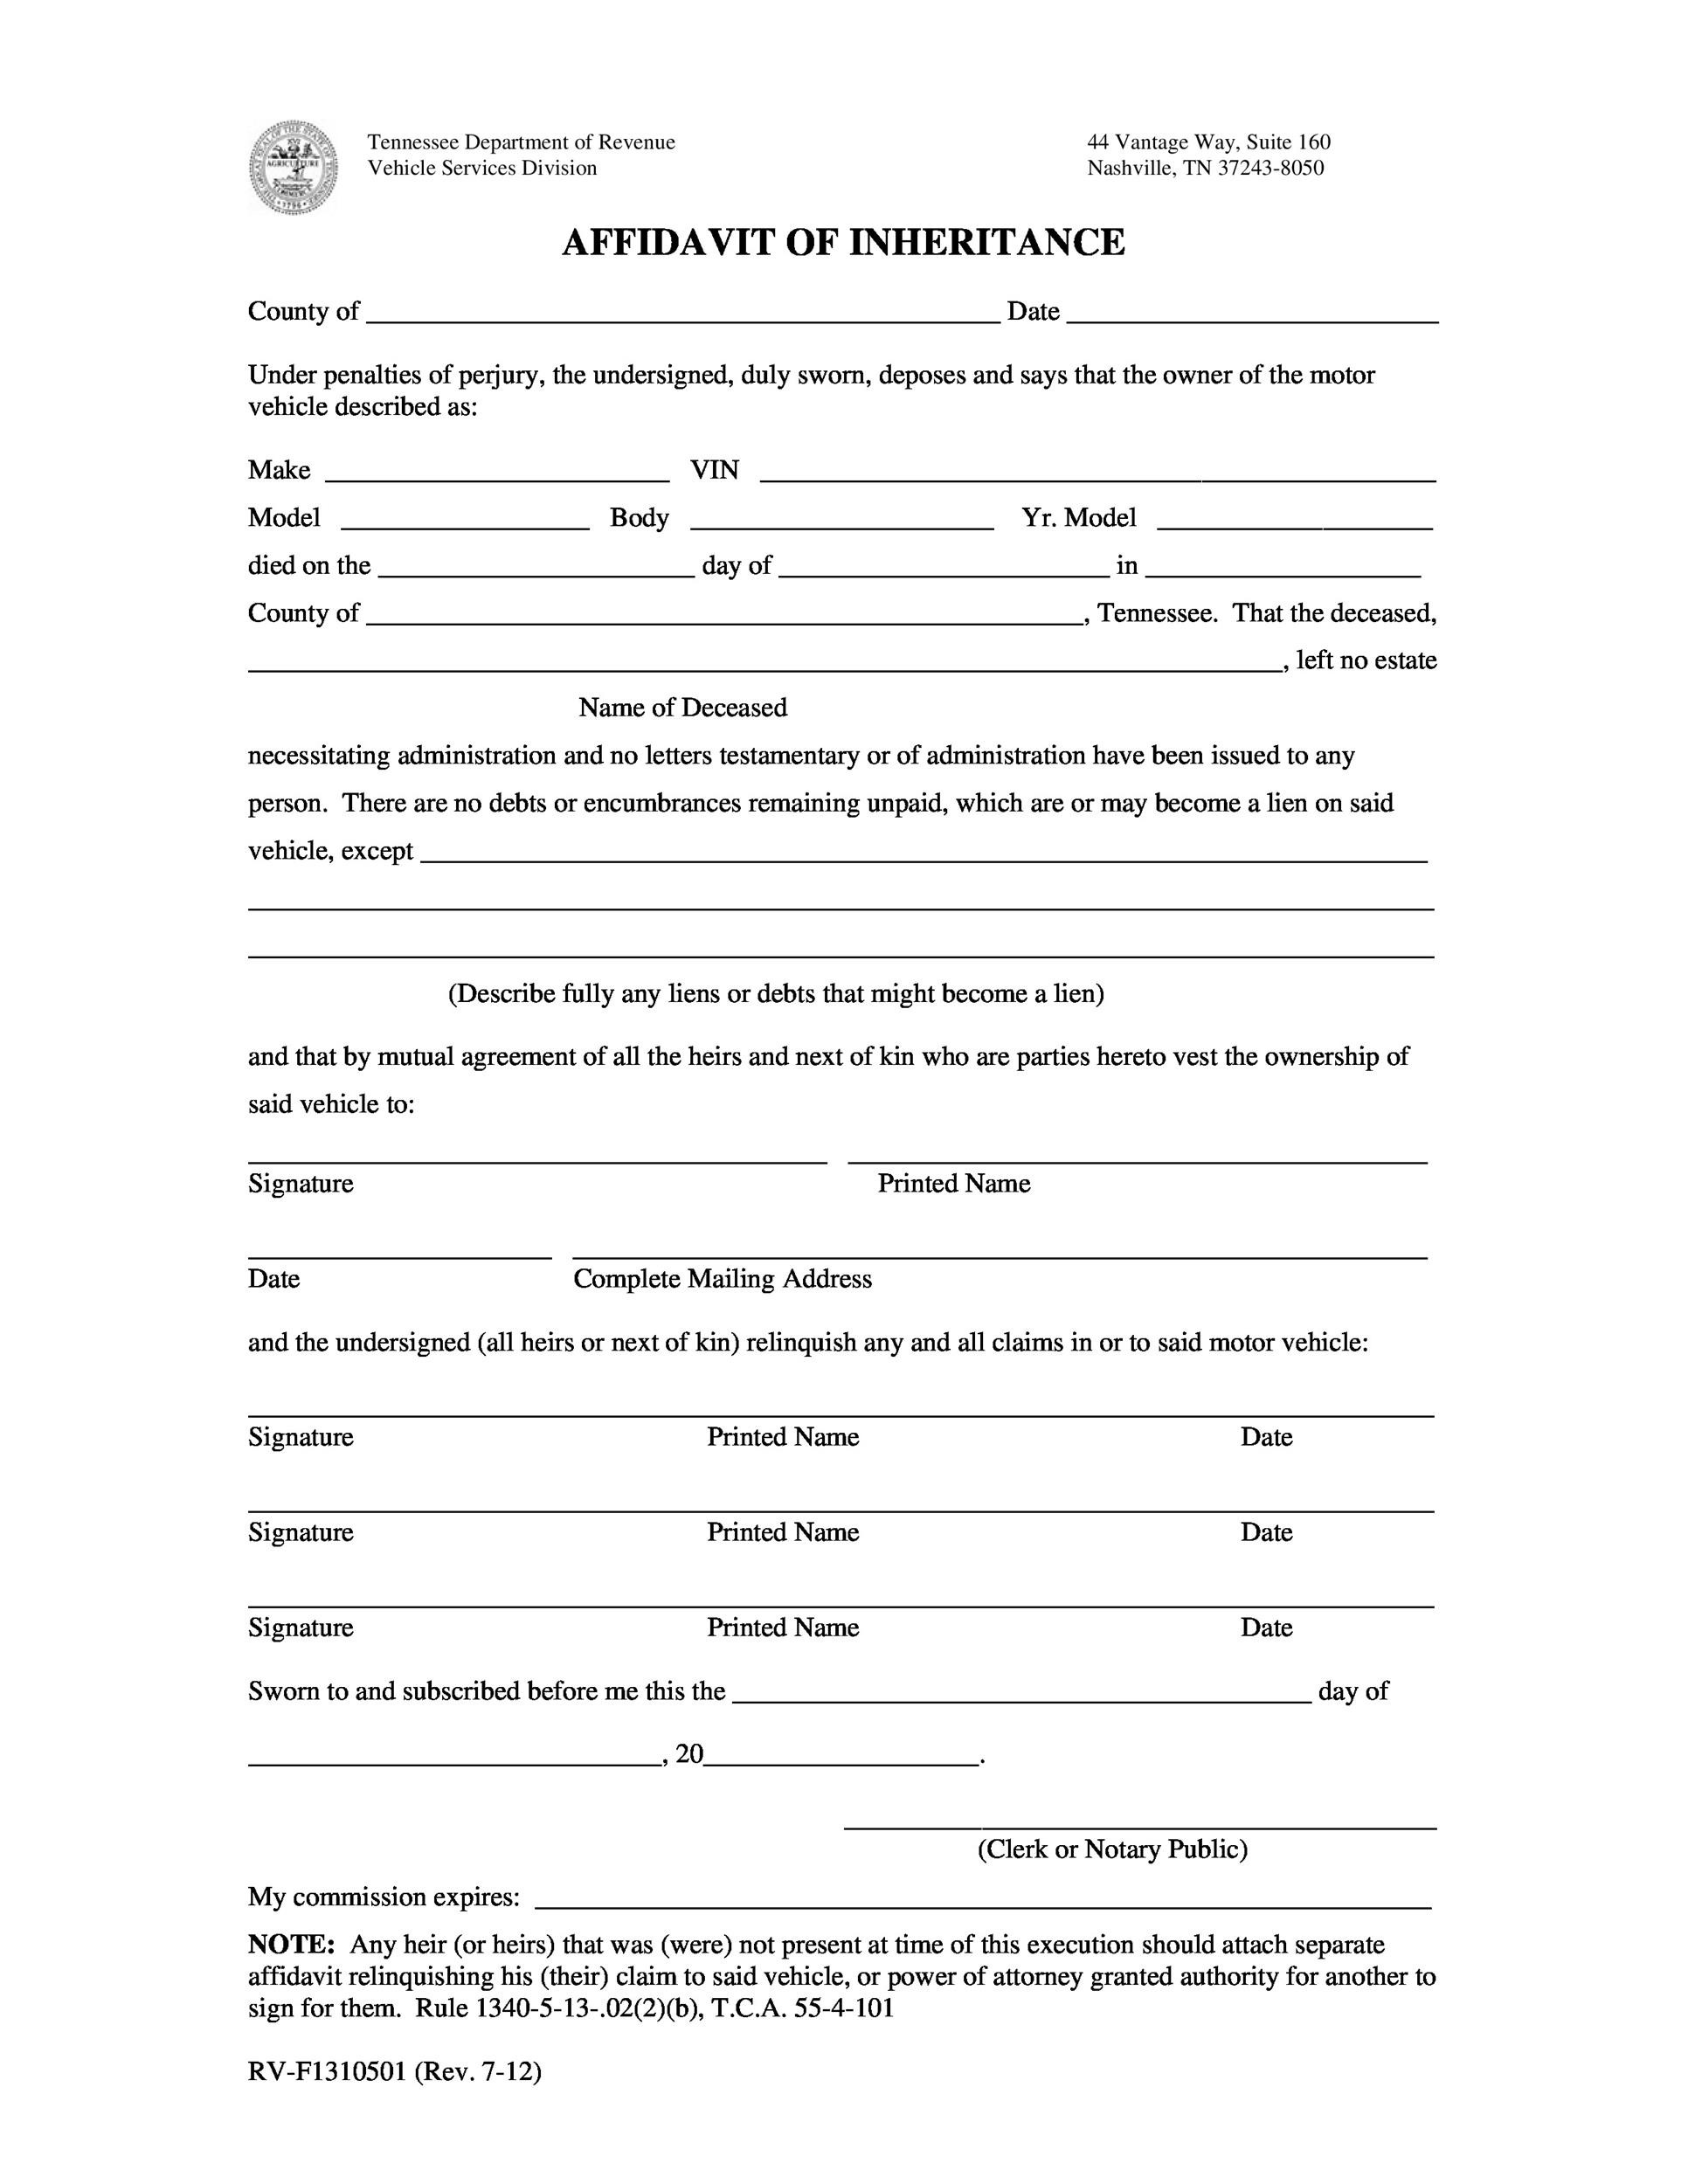 48 sample affidavit forms templates affidavit of for Next of kin form template uk